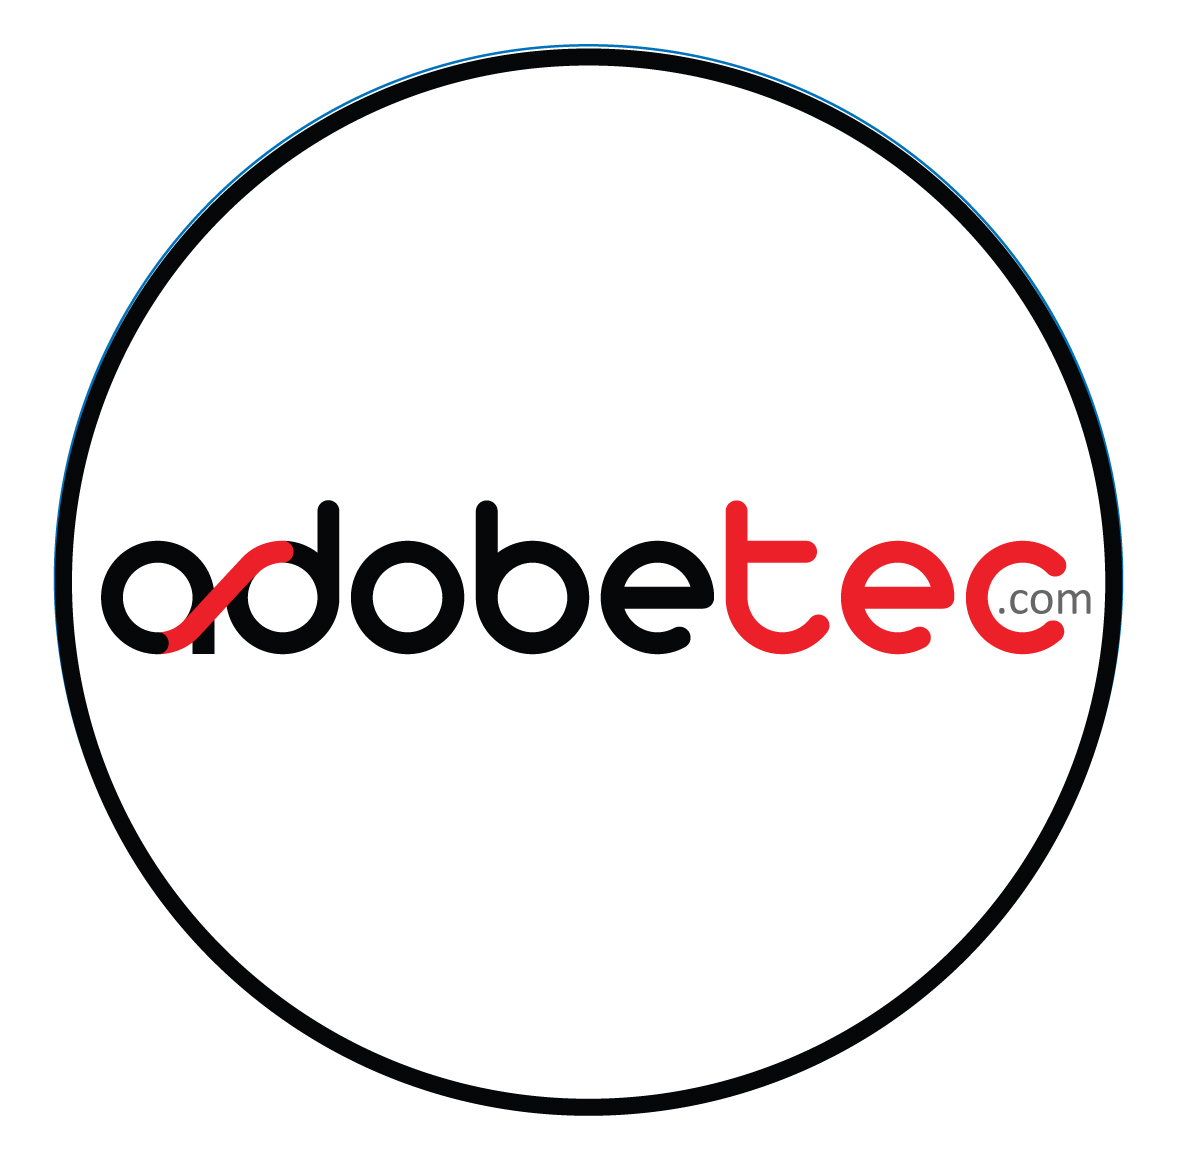 Adobetec online - Learn Digital Design